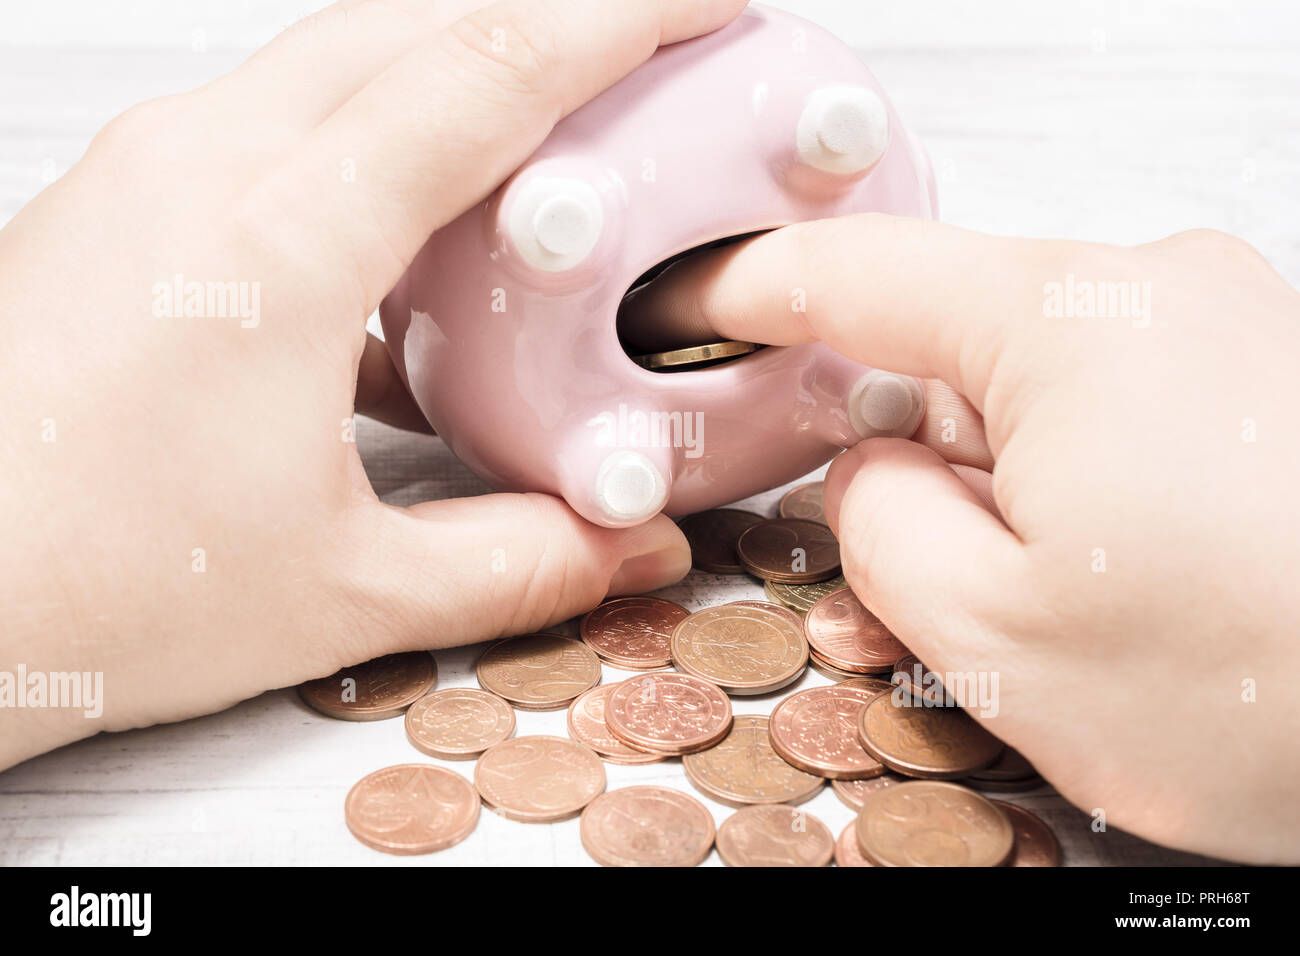 Hand Collecting Coins Out Of Open Piggybank - Stock Image